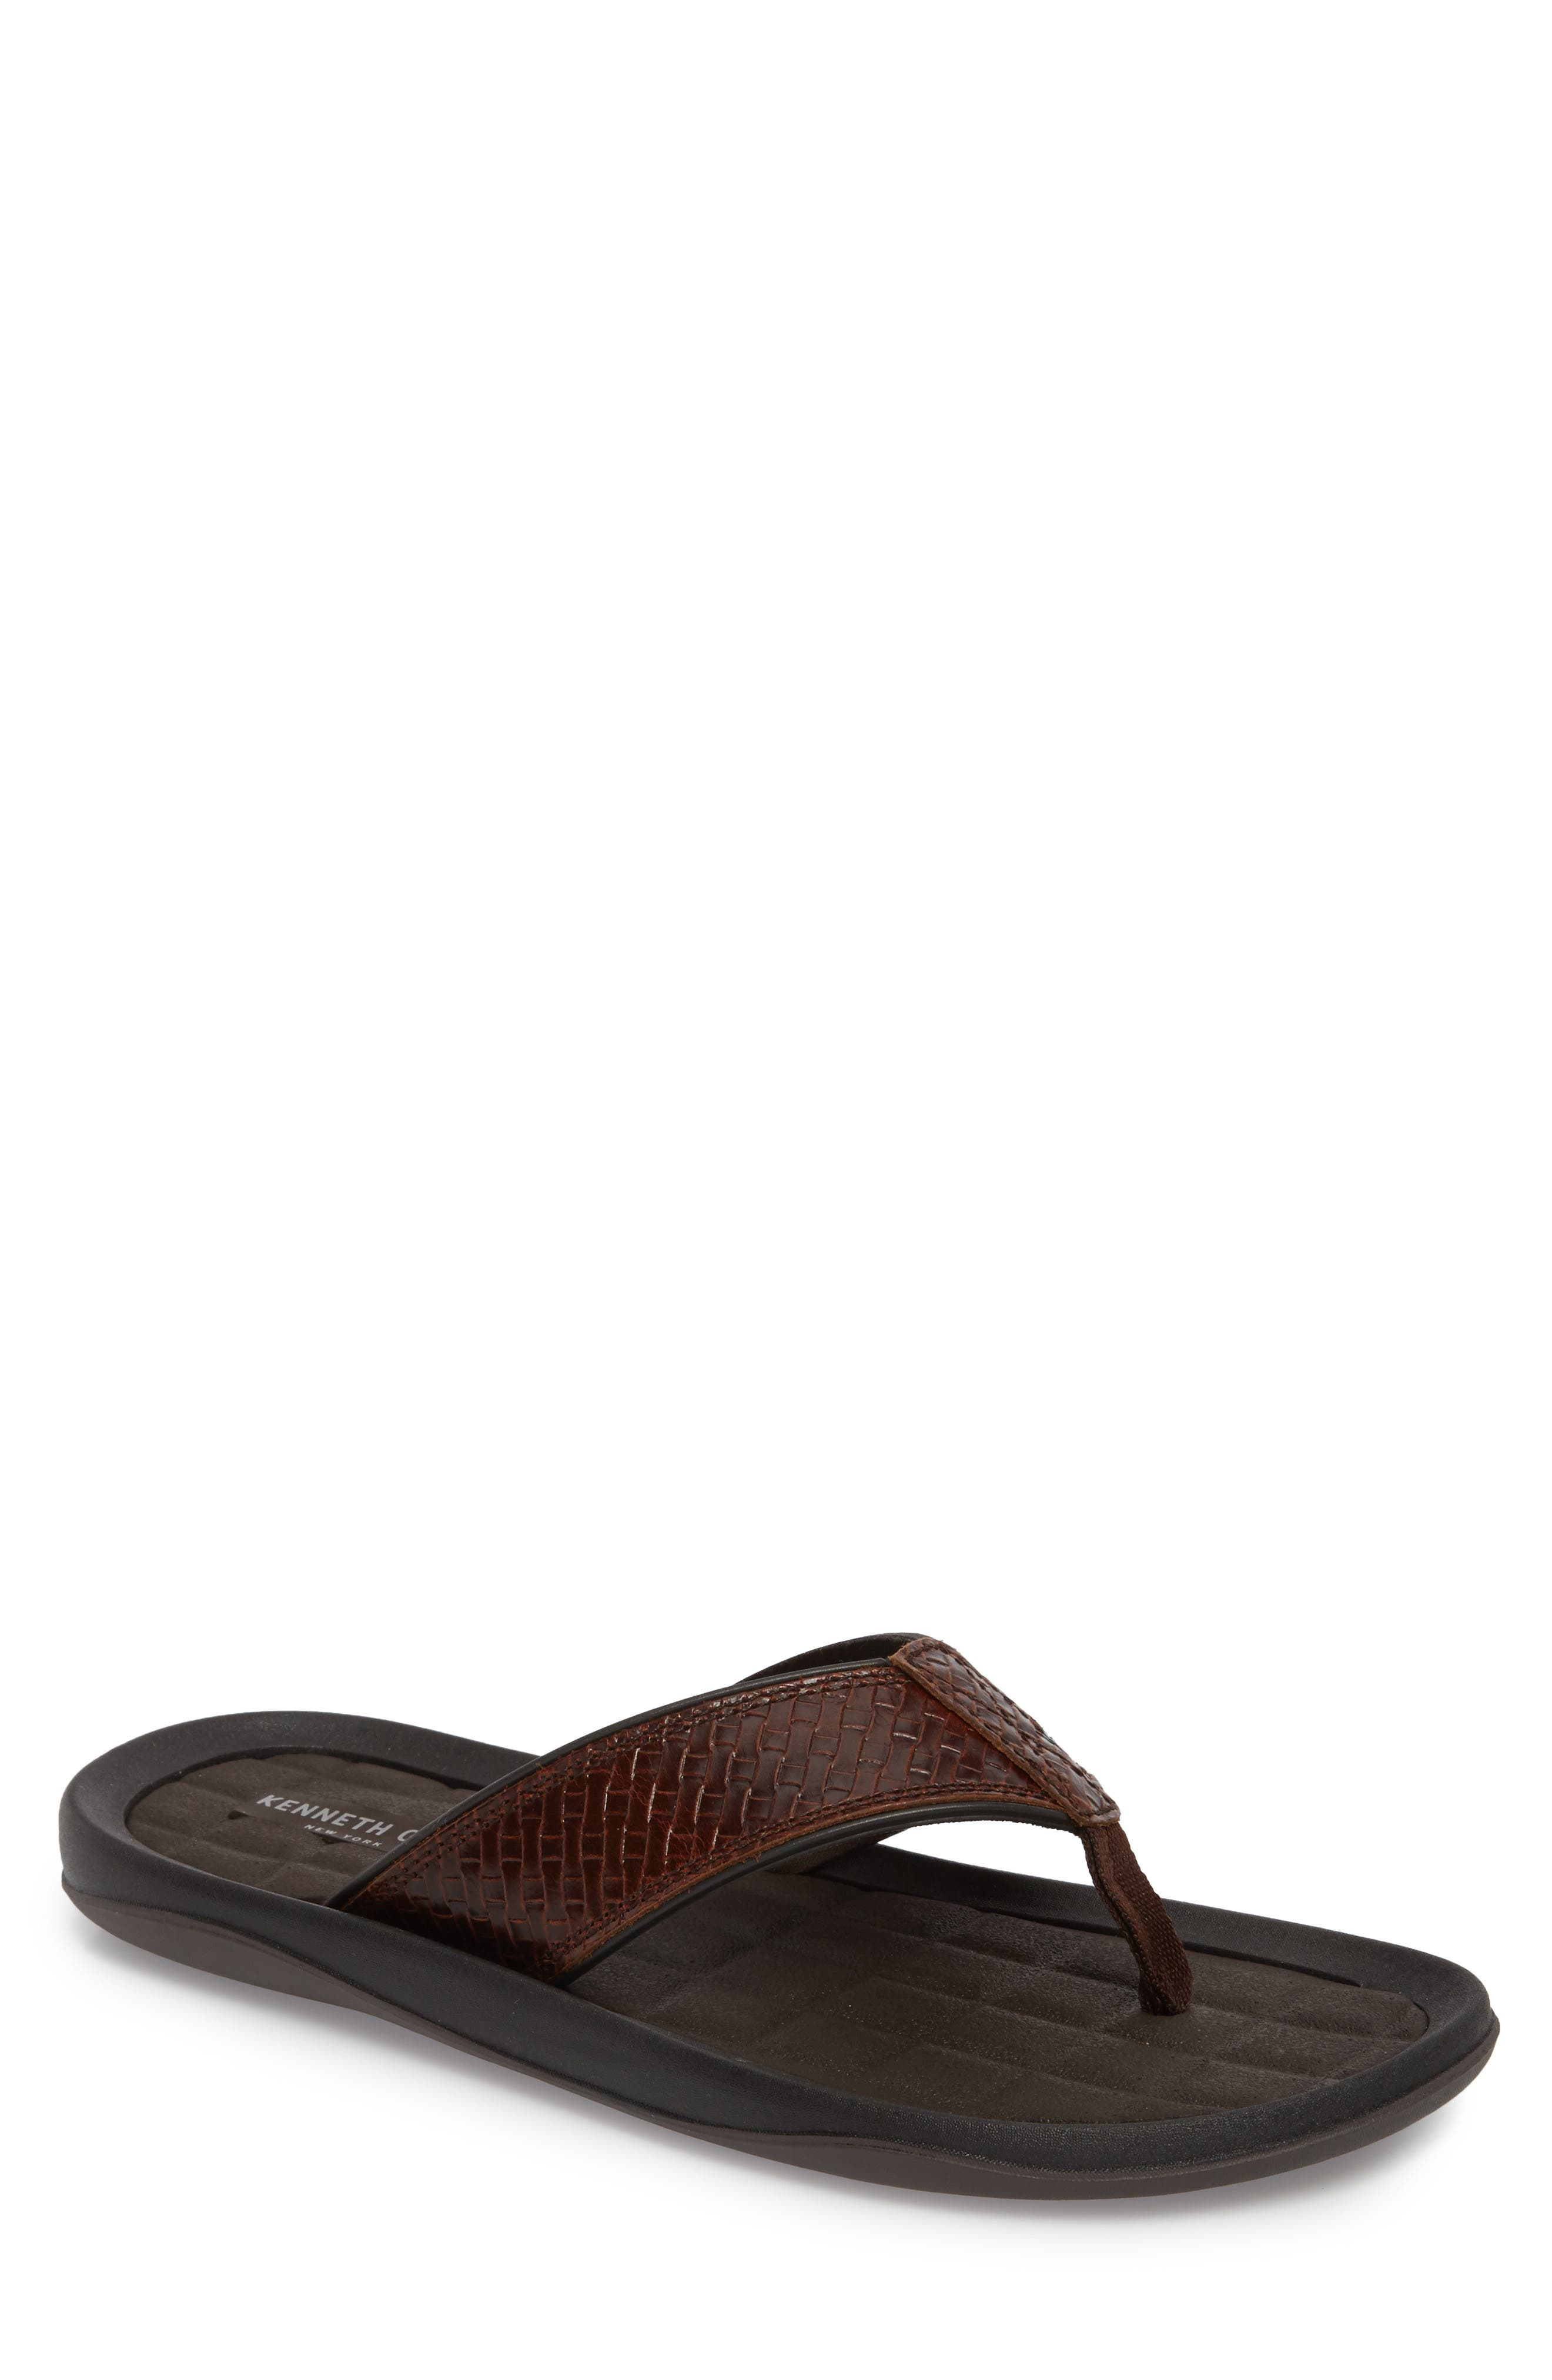 Izzo Embossed Flip Flop,                             Main thumbnail 1, color,                             Brown Leather